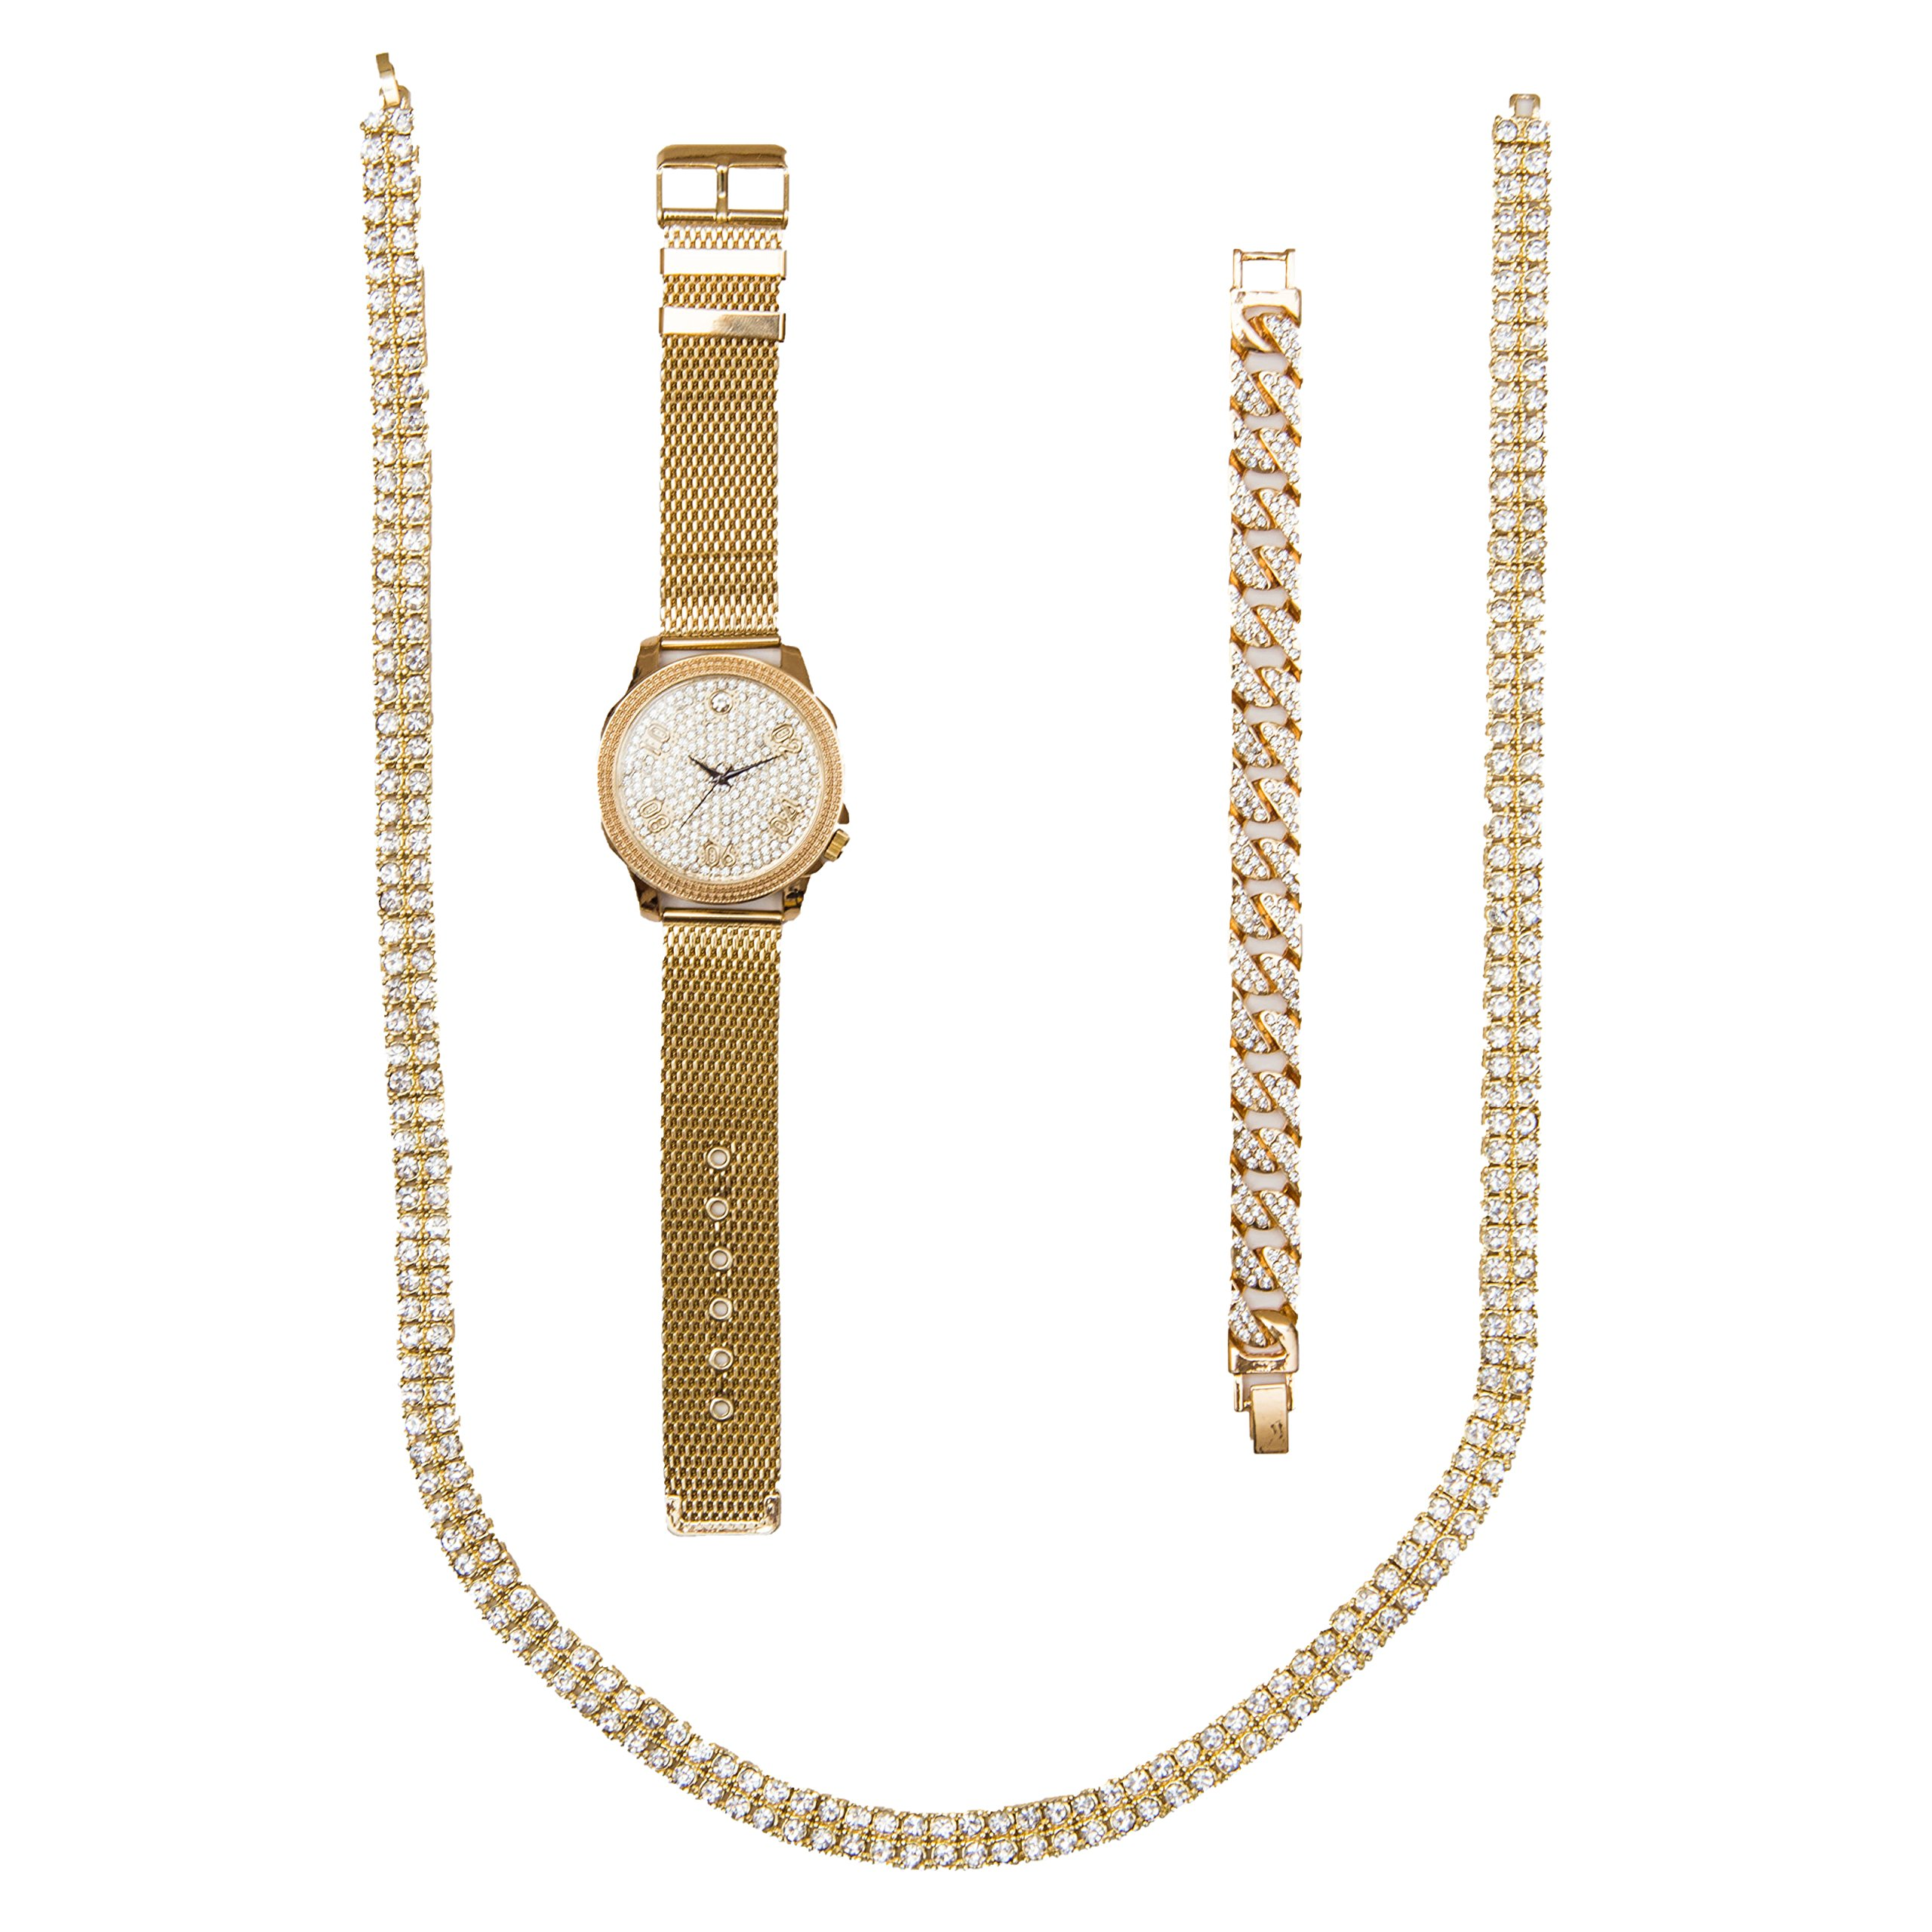 Bling-ed Out Flexin' Diamonds on Dial of This Gold Mesh Watch Matching The Diamonds on The Full Crystal Necklace and Matching Ice'd Out Cuban Bracelet - 8423MBN Gold Mesh Cuban